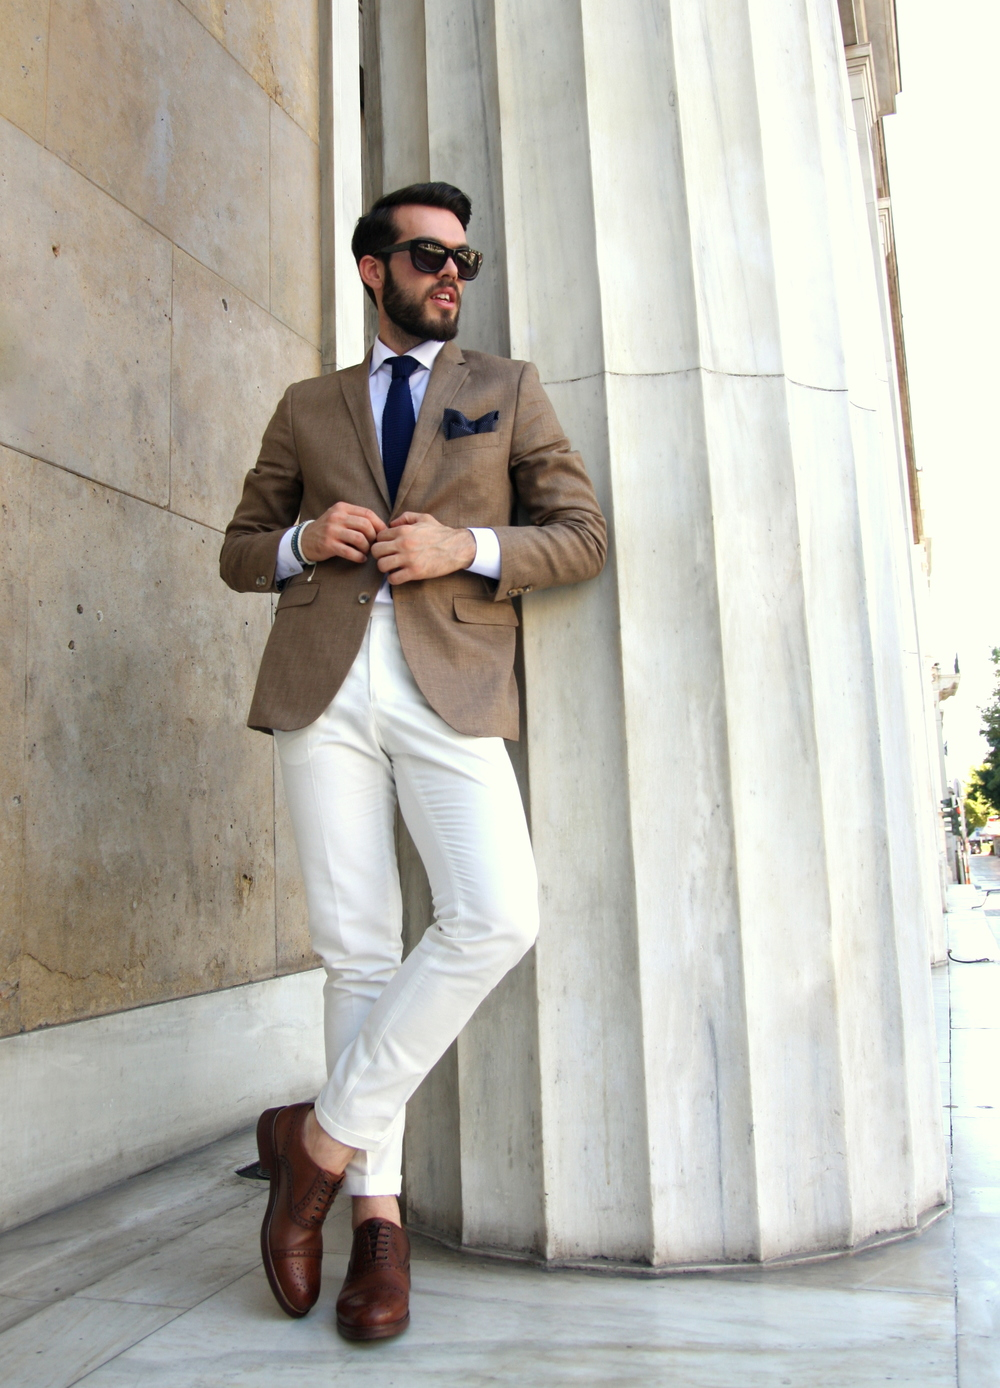 Jacket: H&M Shirt: Brooks Brothers Tie: COS Pants: Brooks Brothers Shoes: Massimo Dutti Sunglasses: Dolce & Gabbana